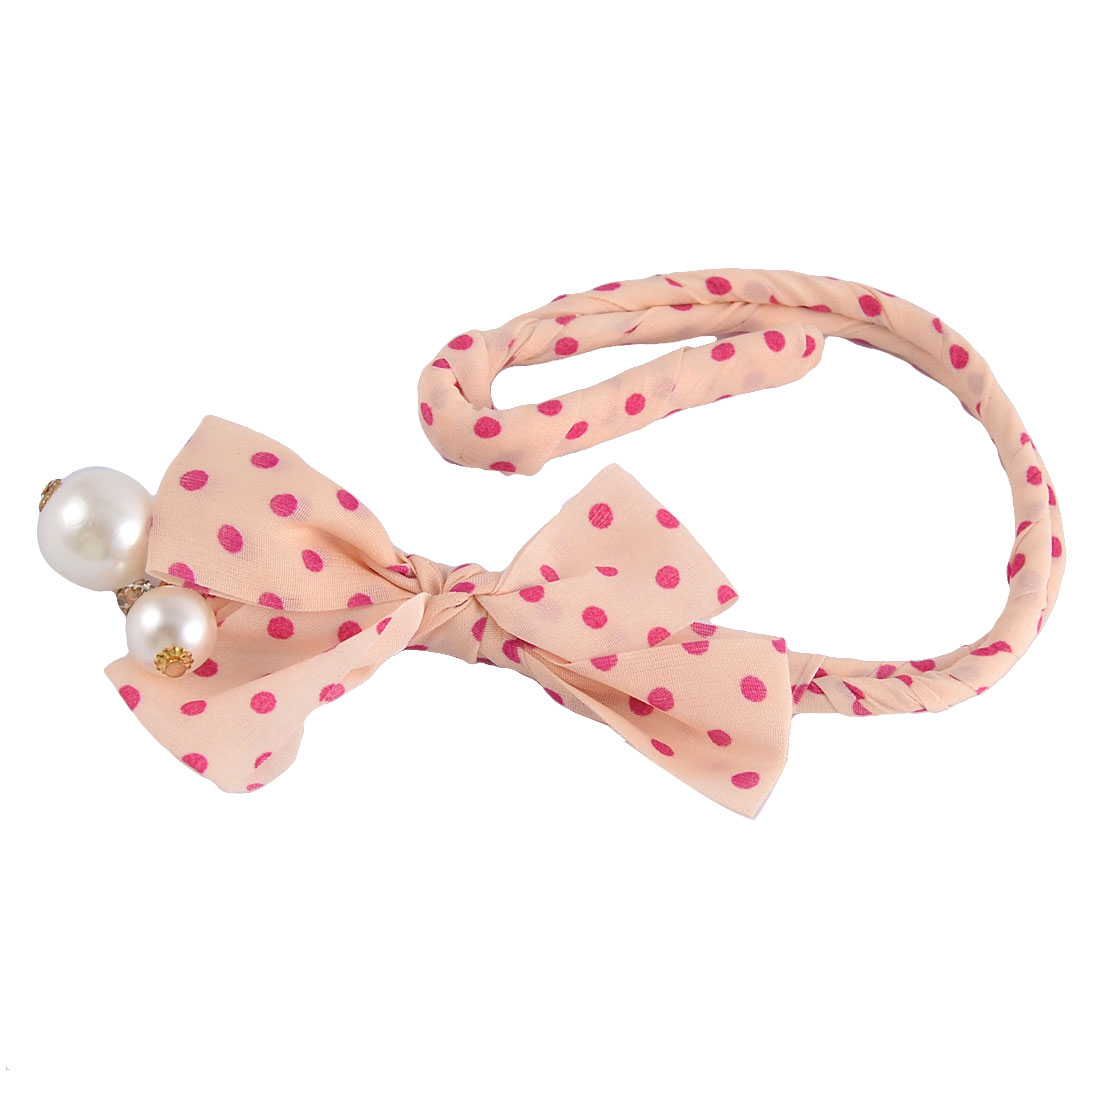 Dot Bowknot Imitation Pearl Decor Ponytail Bun Holder Maker Light Pink Fuchsia